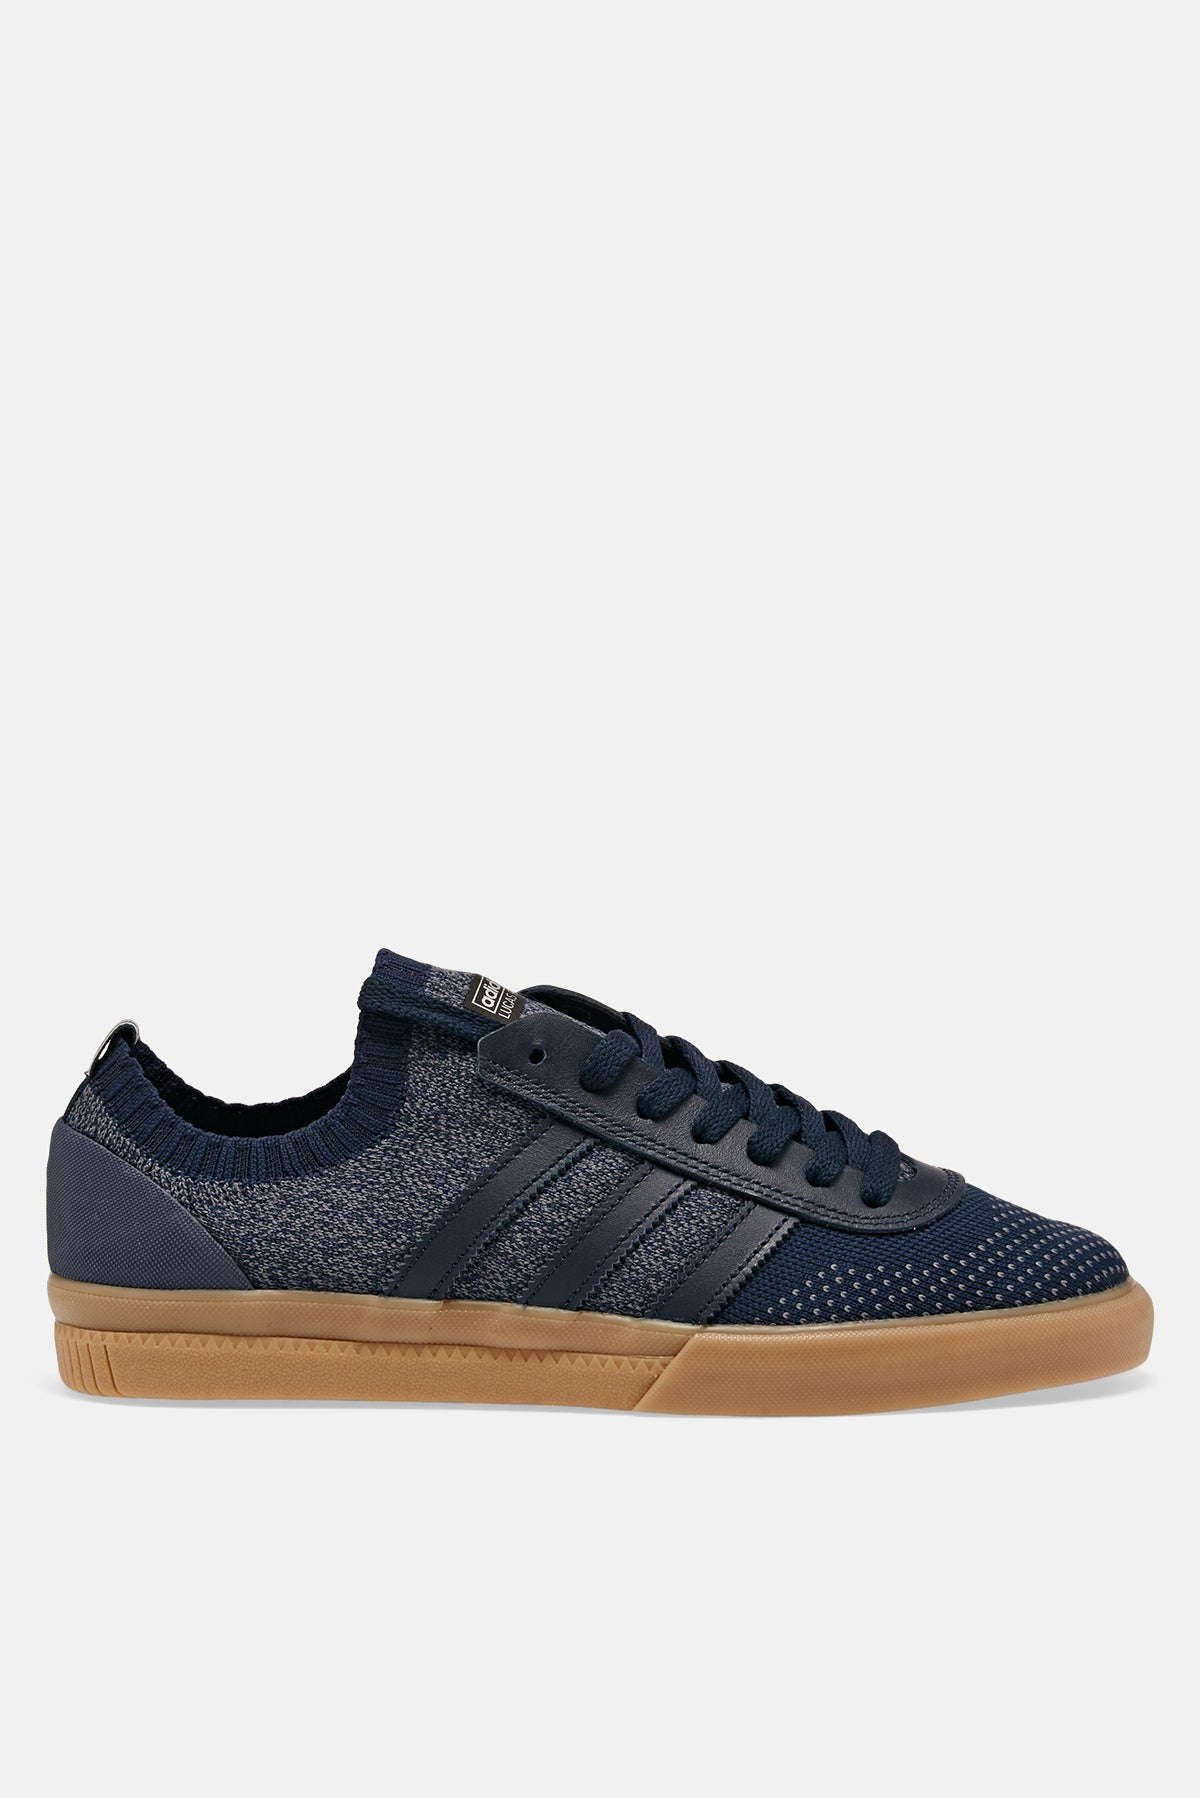 902467145b93 Adidas Lucas Premiere Primeknit Shoes available from Priory